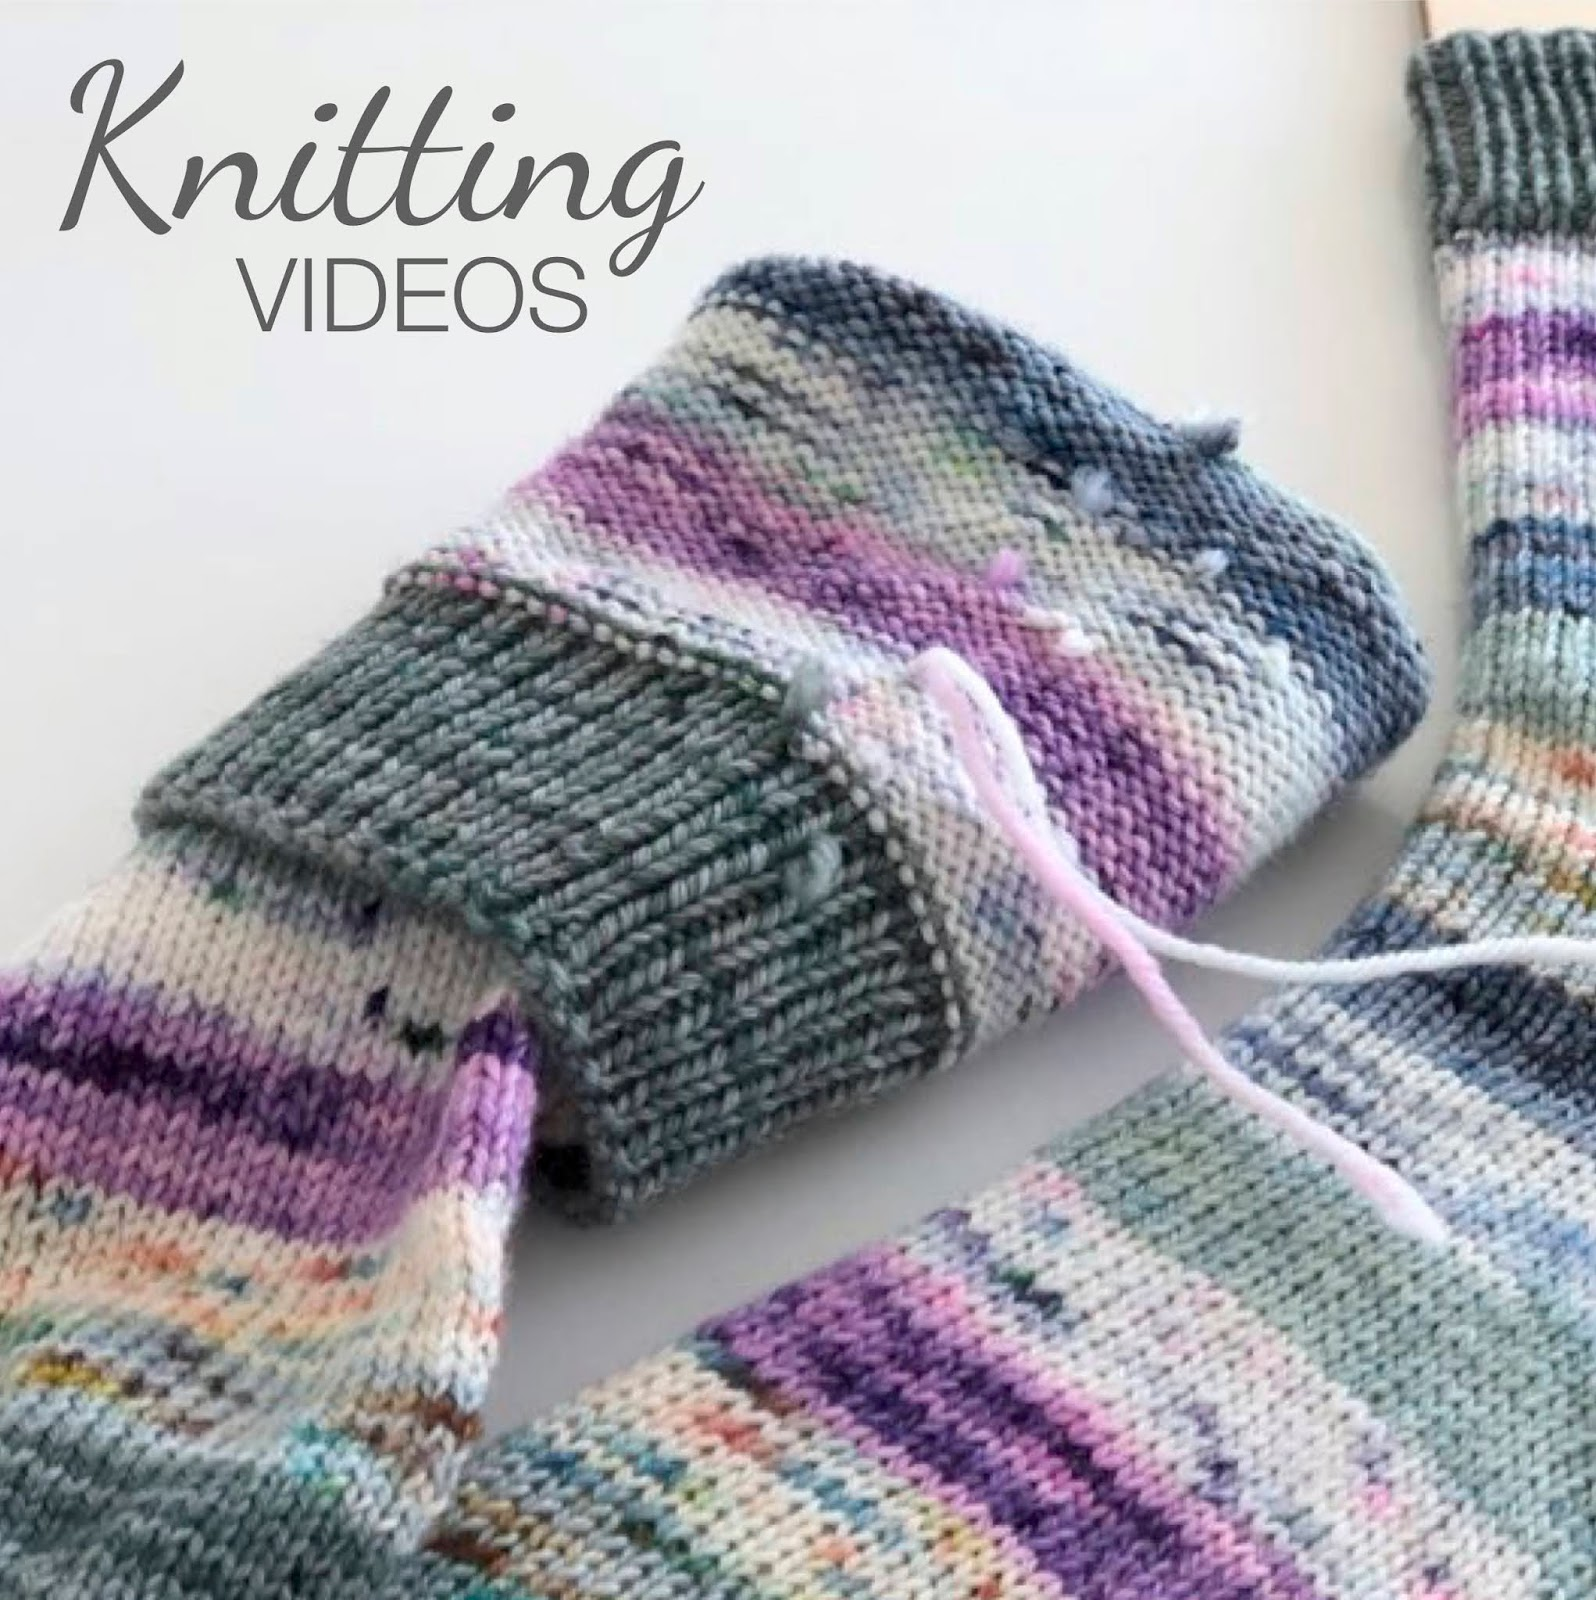 Knitting Tutorials Link